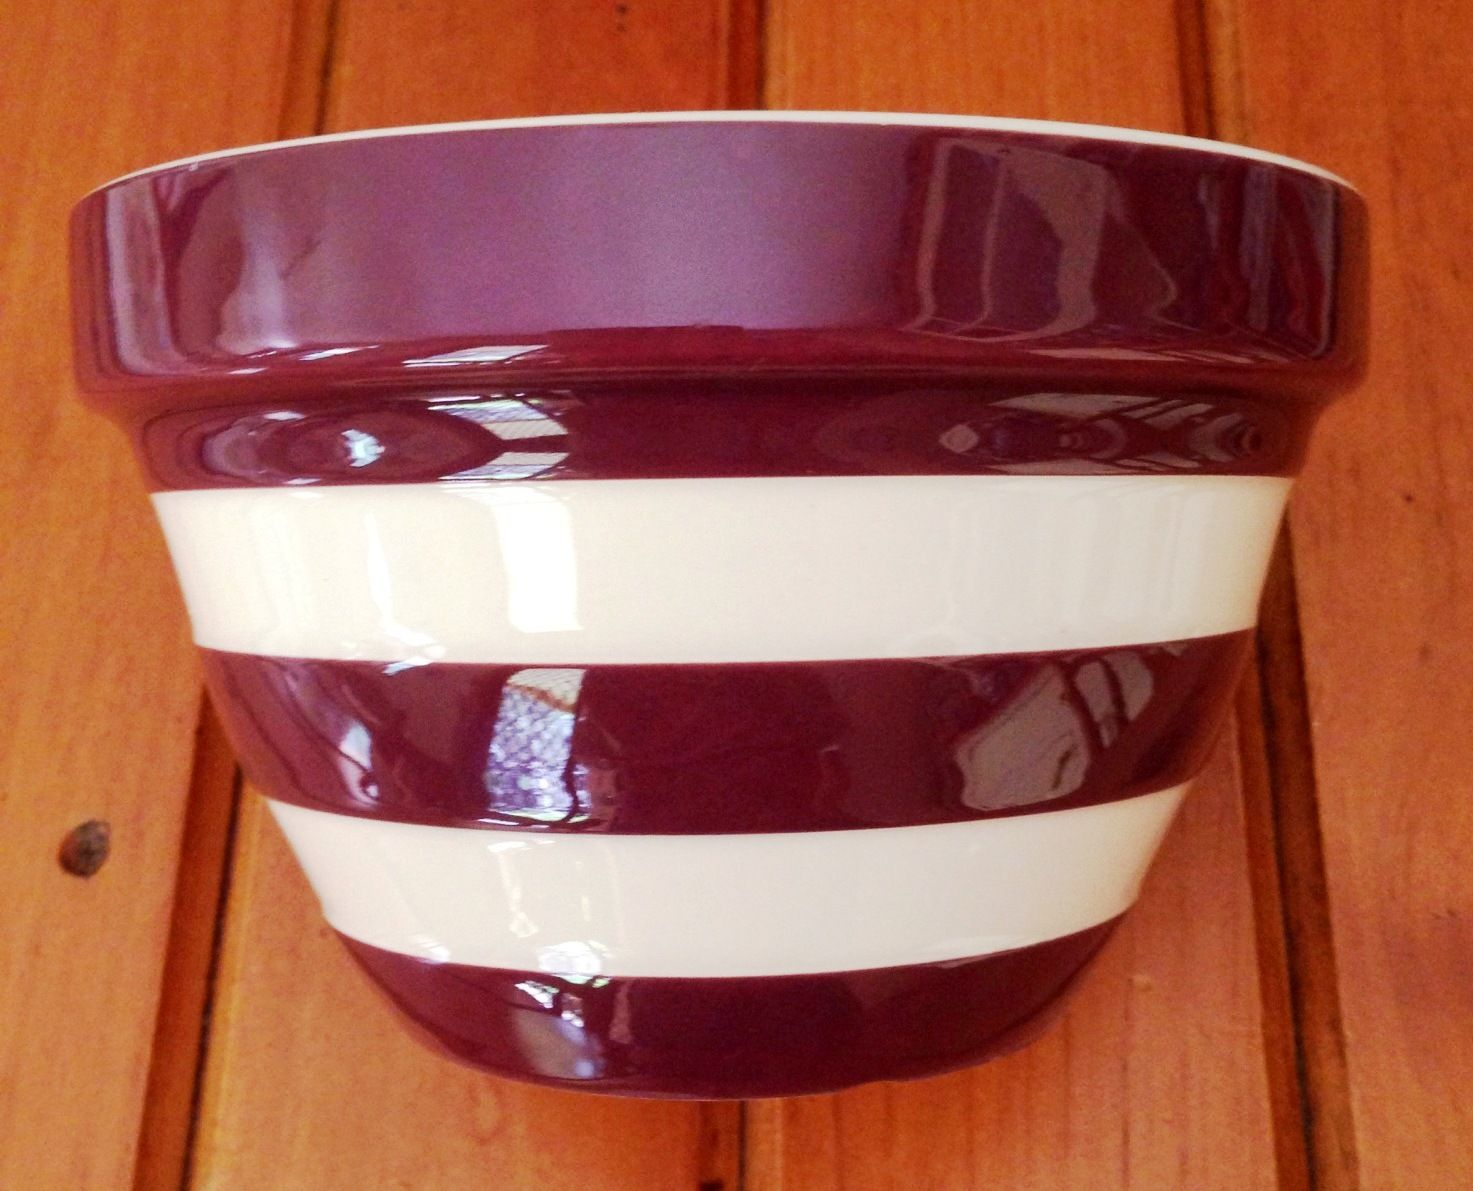 Special Edition Employee Only Christmas Pudding Bowl 2004.   Christmas pudding, Pudding, Cornishware